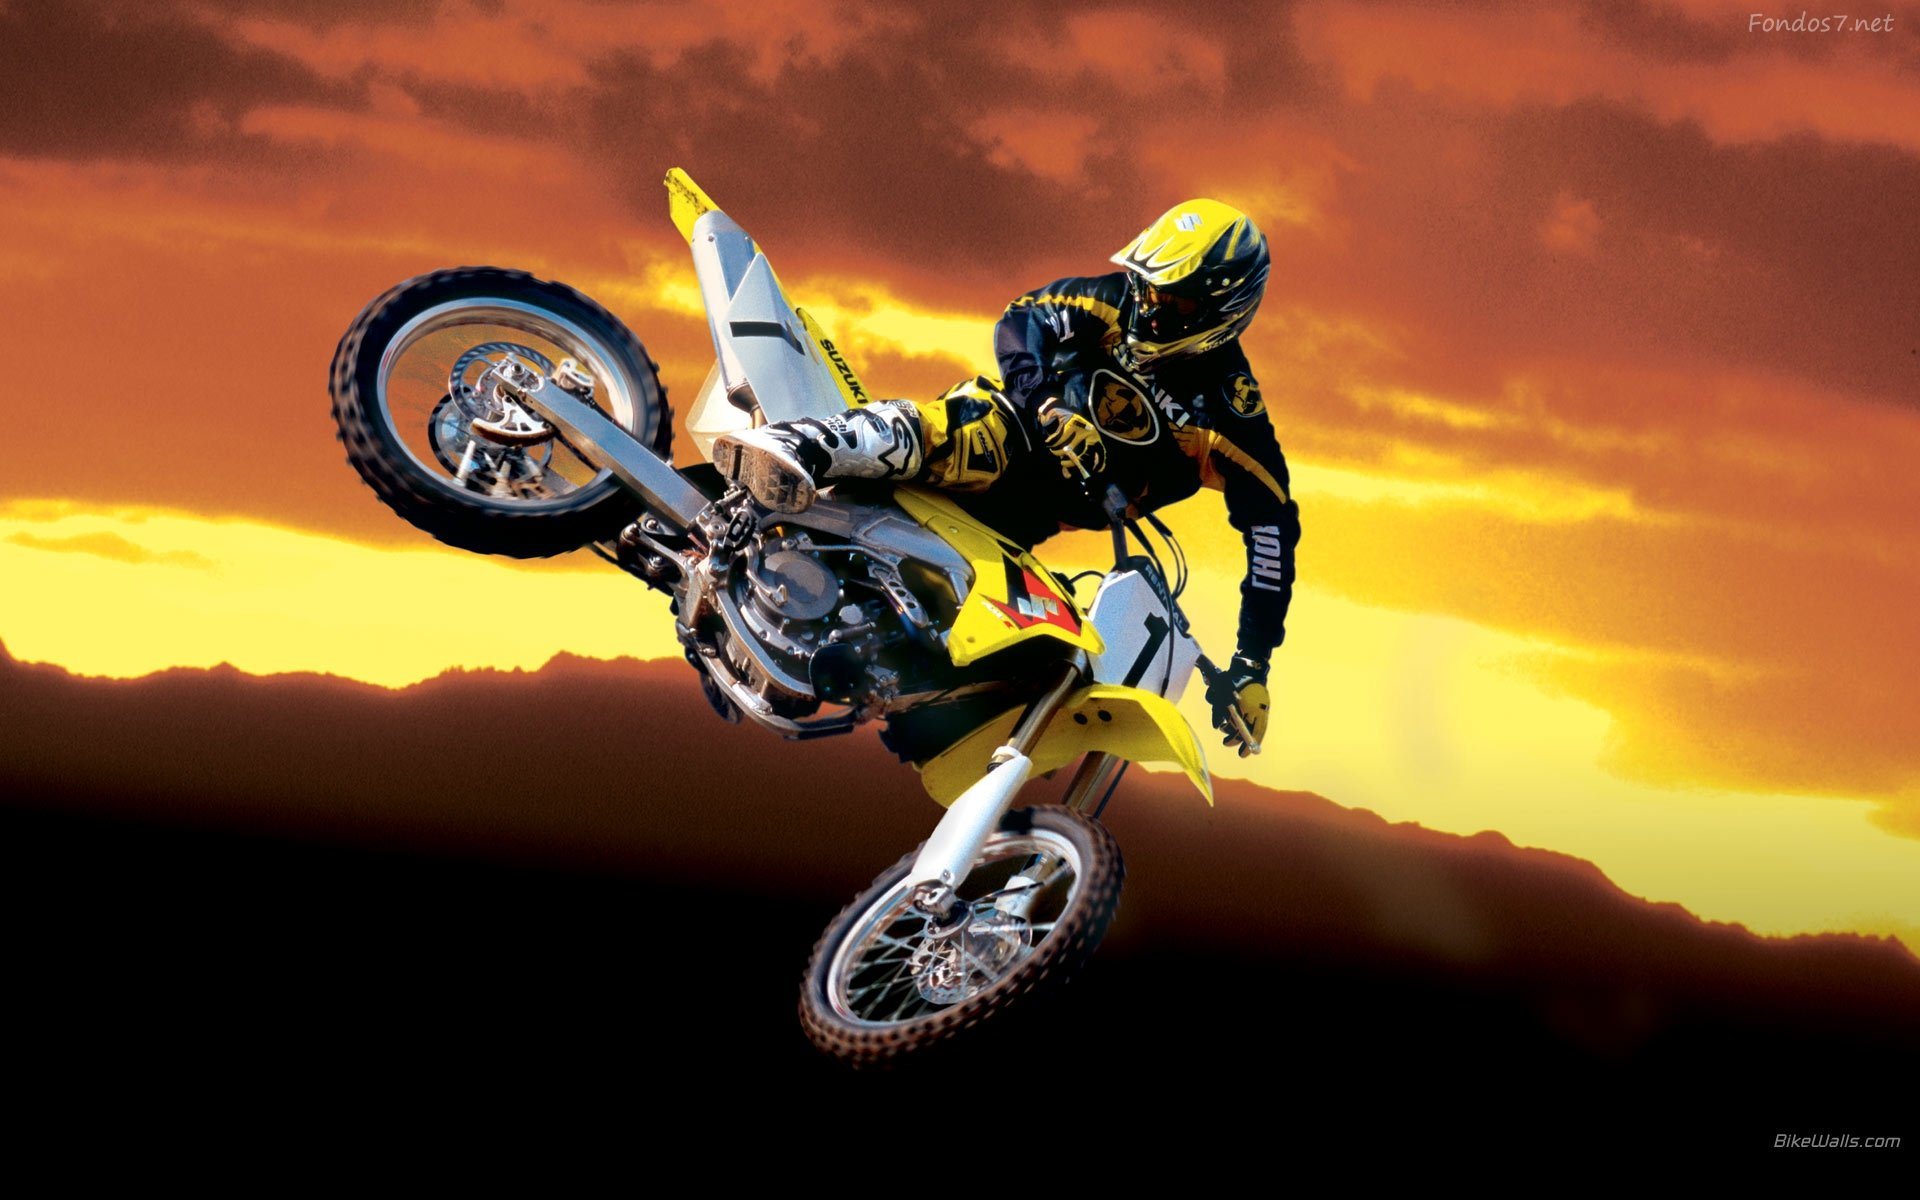 dirtbike motocross moto bike extreme motorbike dirt